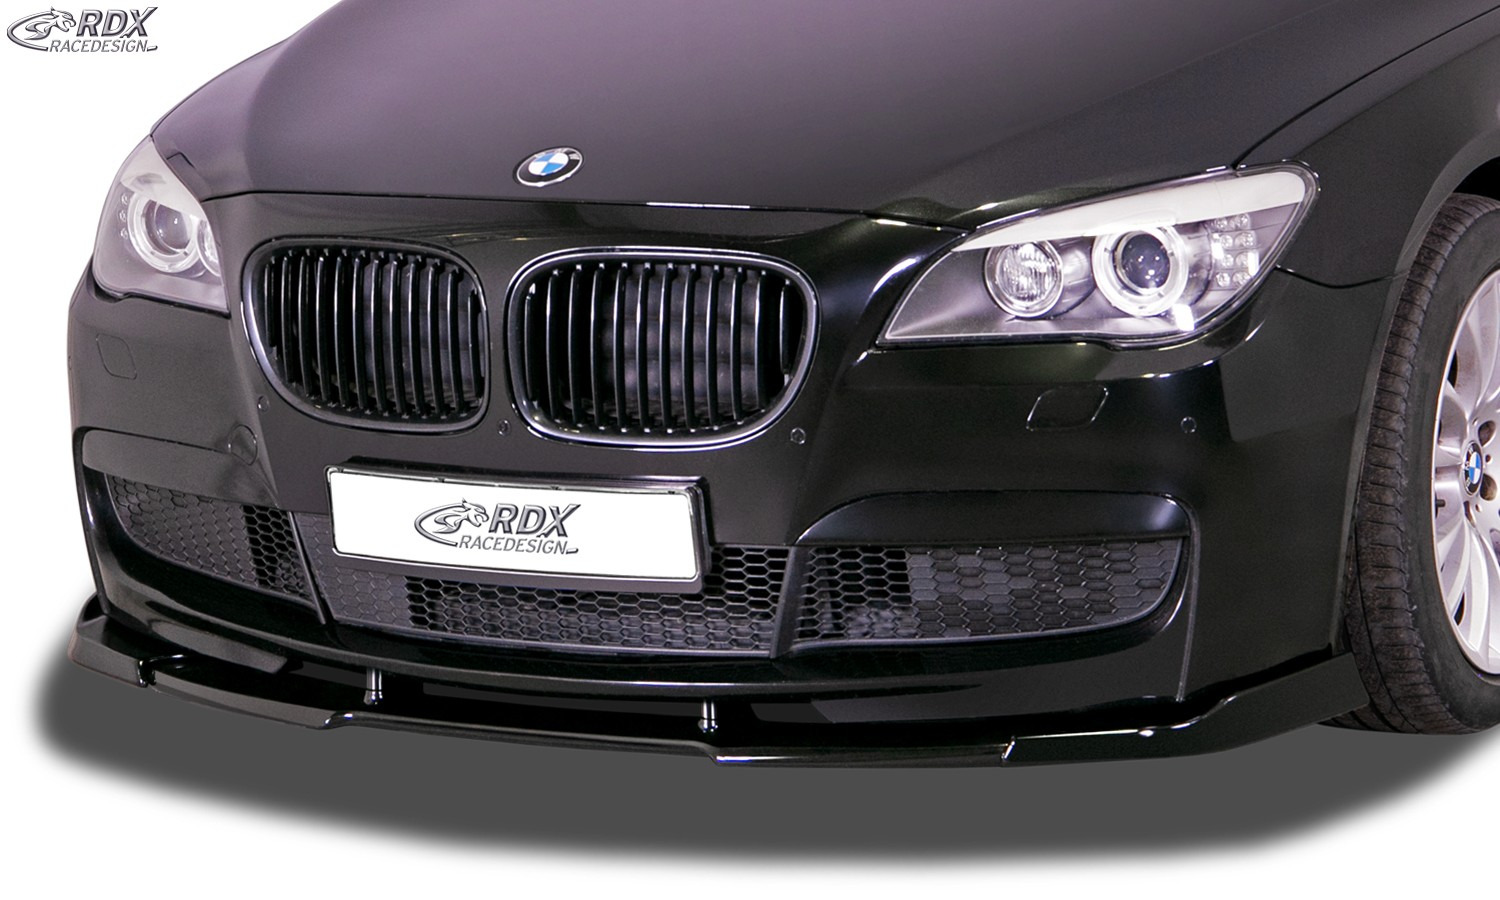 RDX Front Spoiler VARIO-X BMW 7-series F01 / F02 for cars with M-Package (2008-2015) Front Lip Splitter